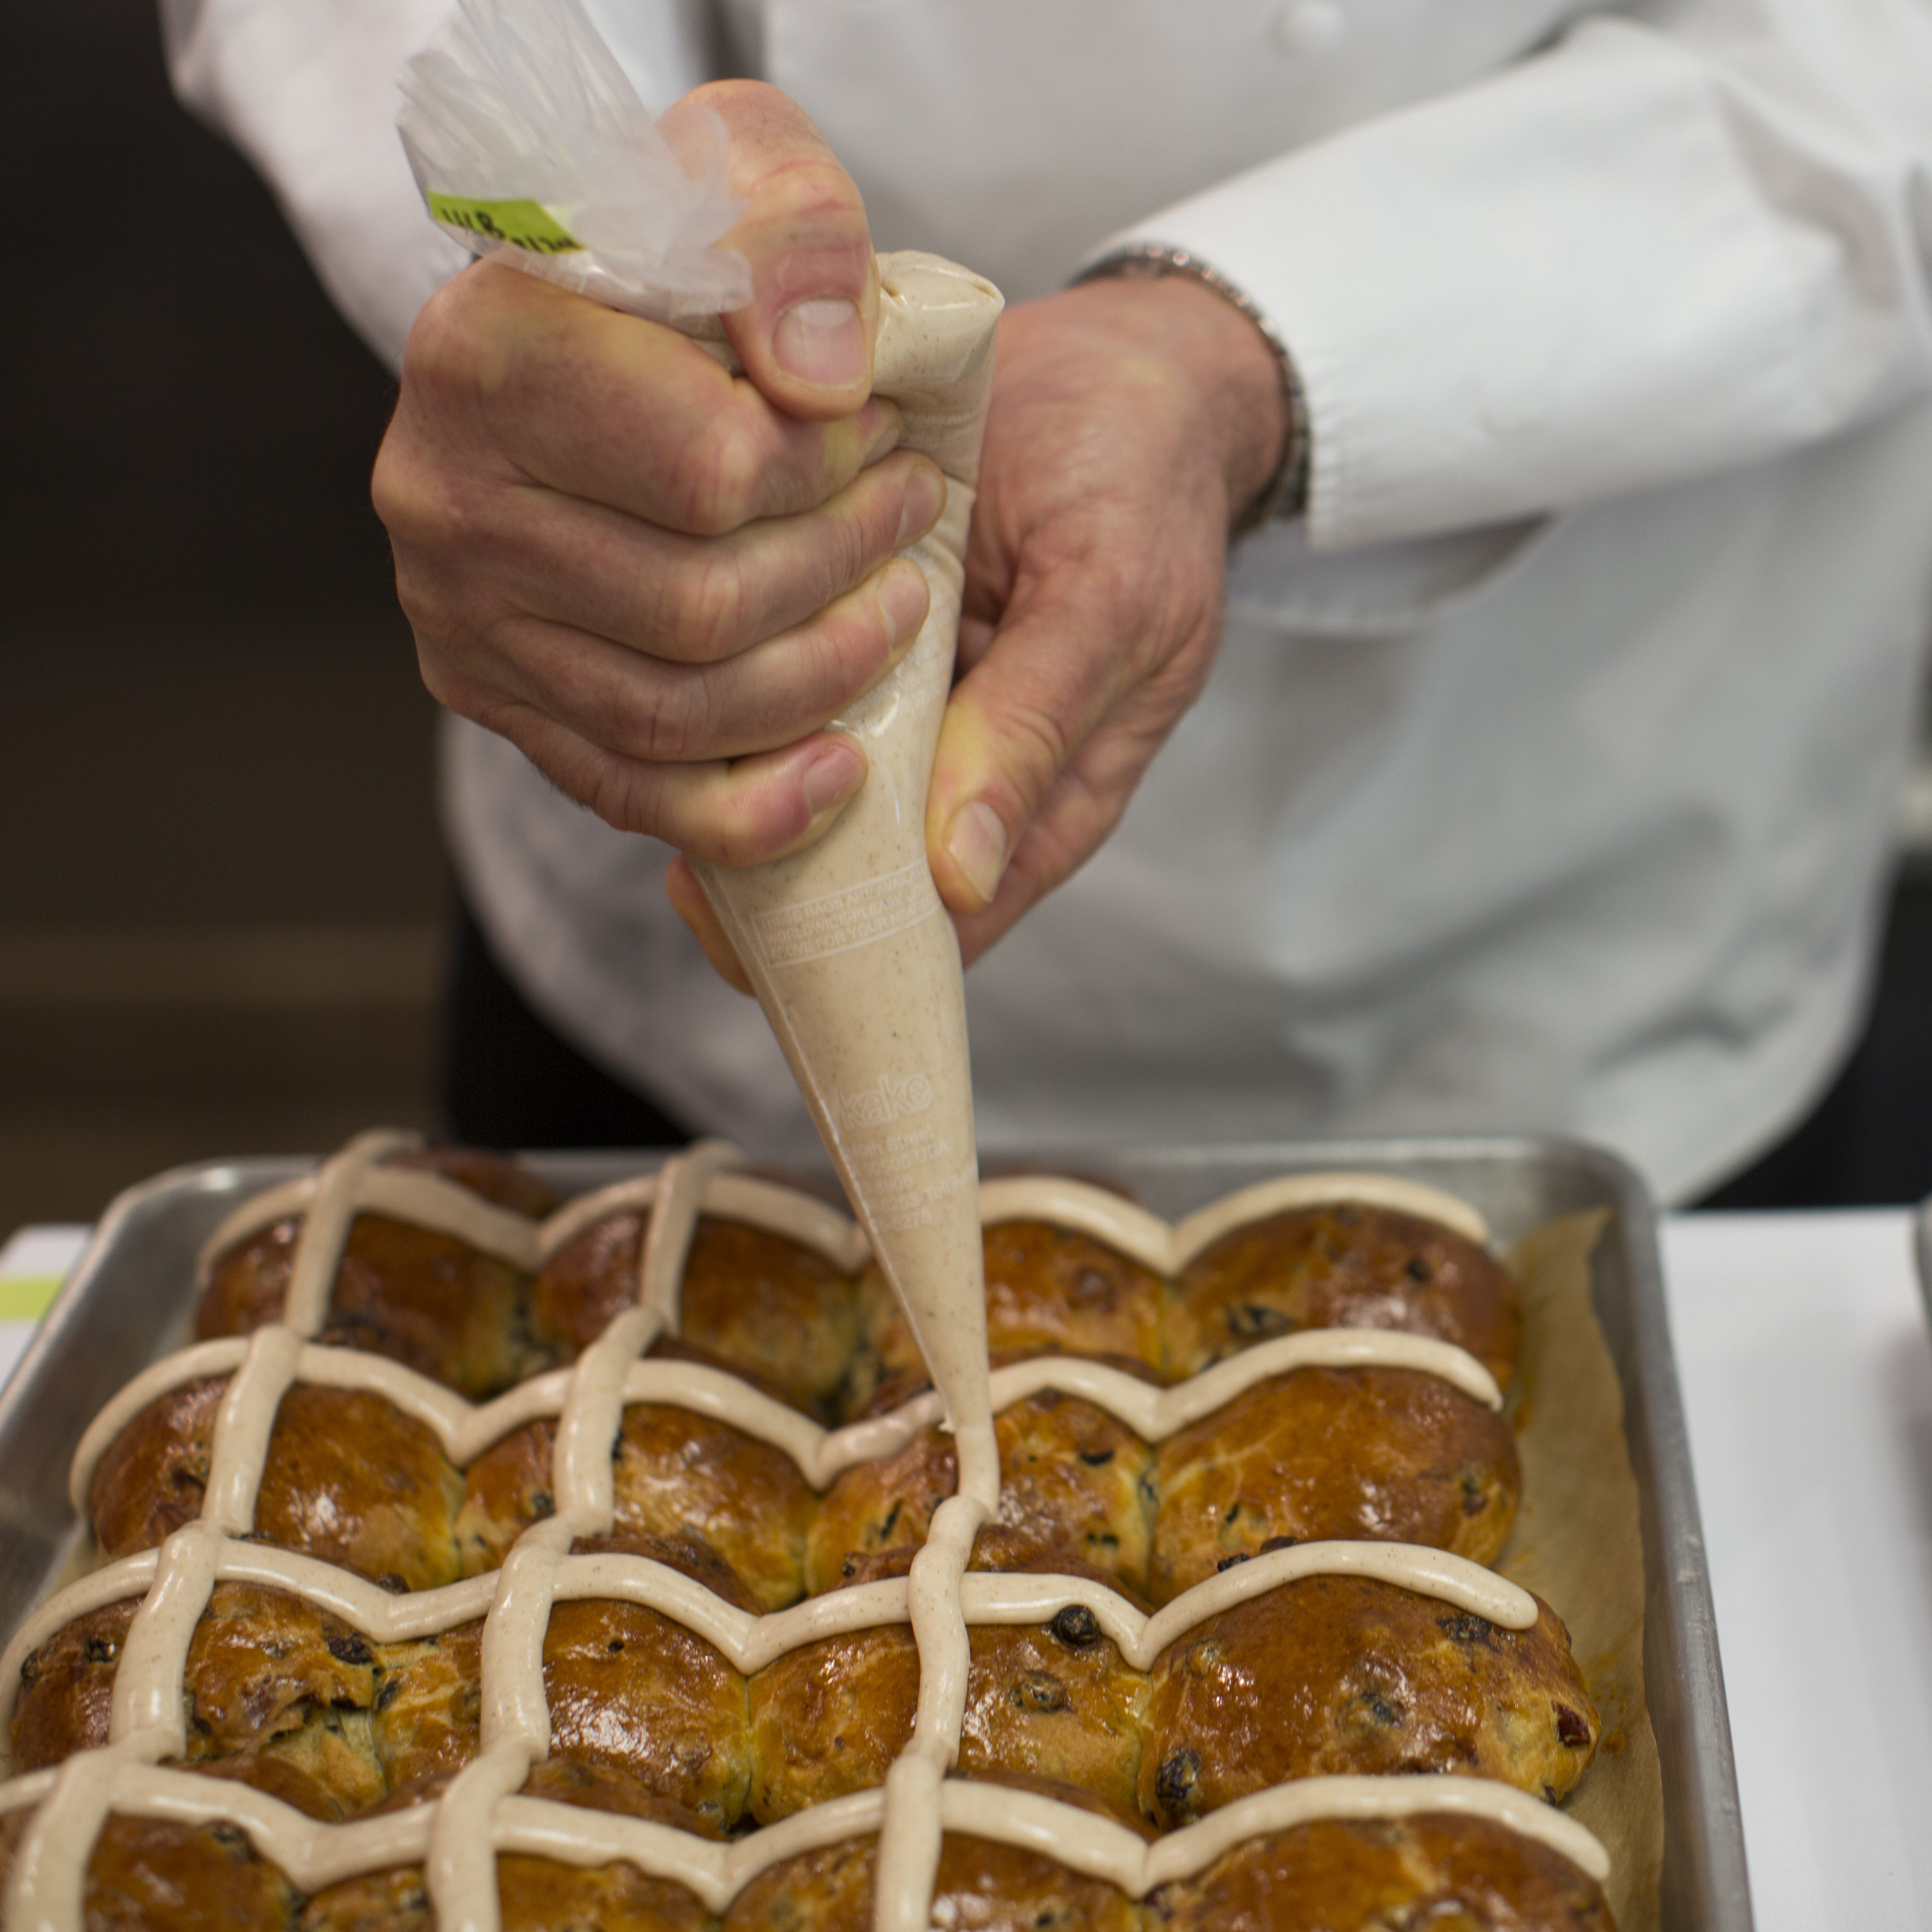 Chef Thomas Keller demonstrates how to apply homemade icing to his hot cross buns.